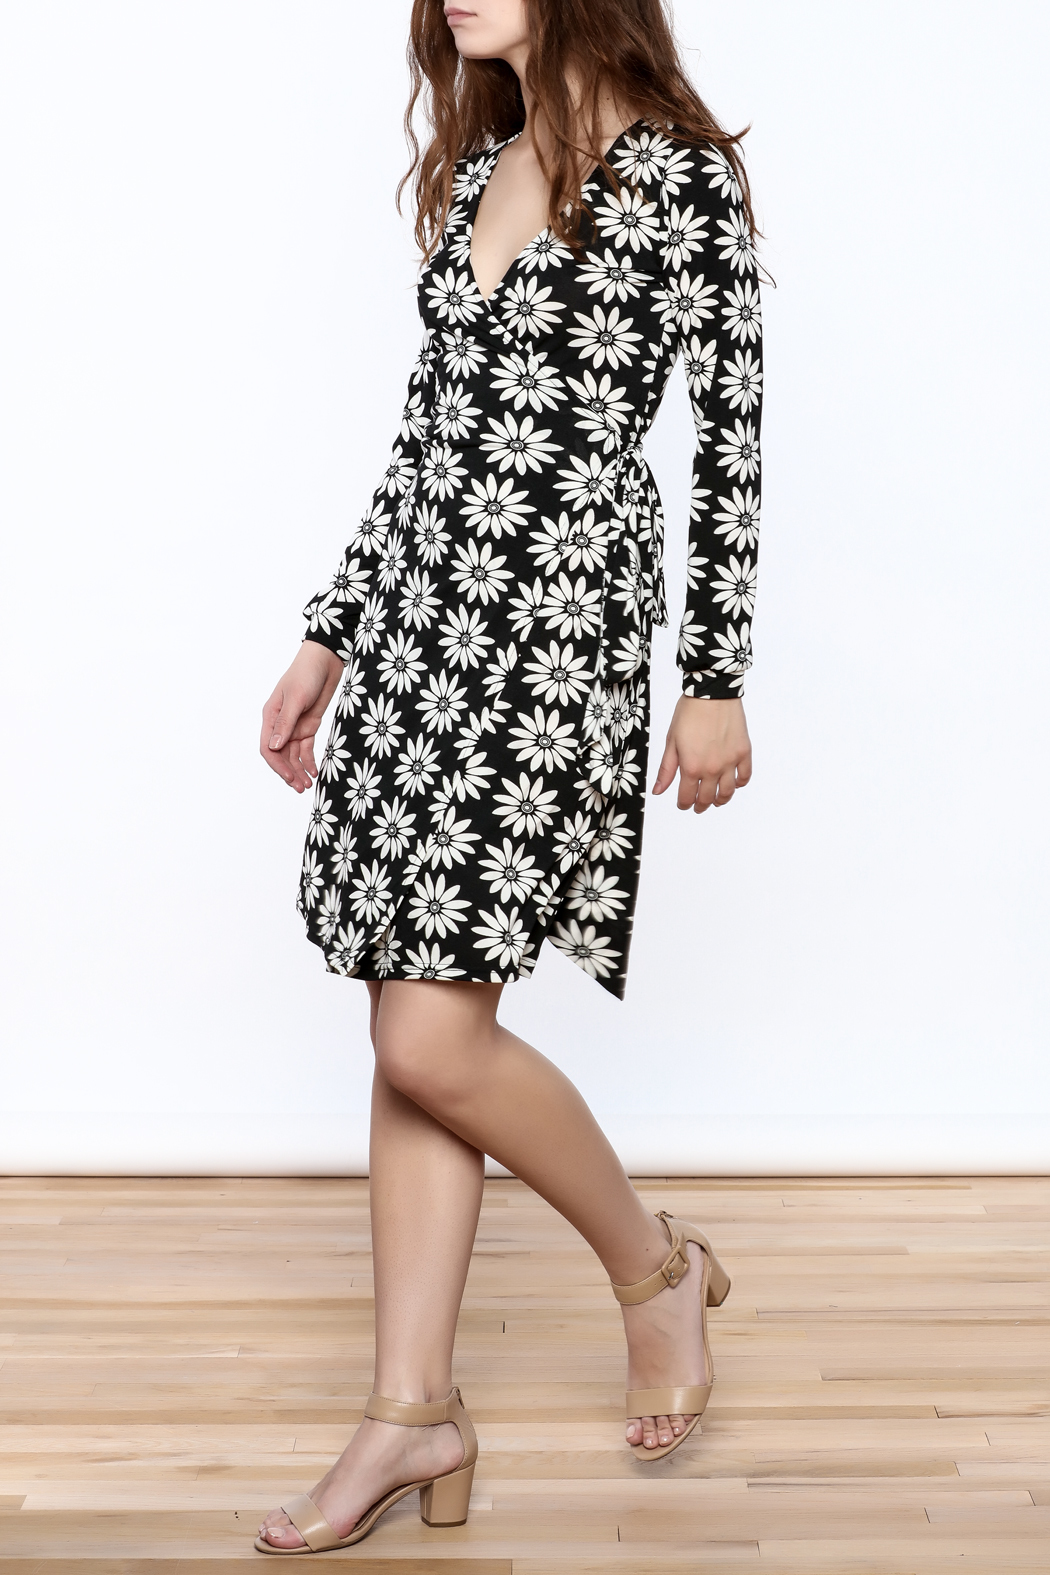 Gina Louise Floral Wrap Dress - Front Full Image